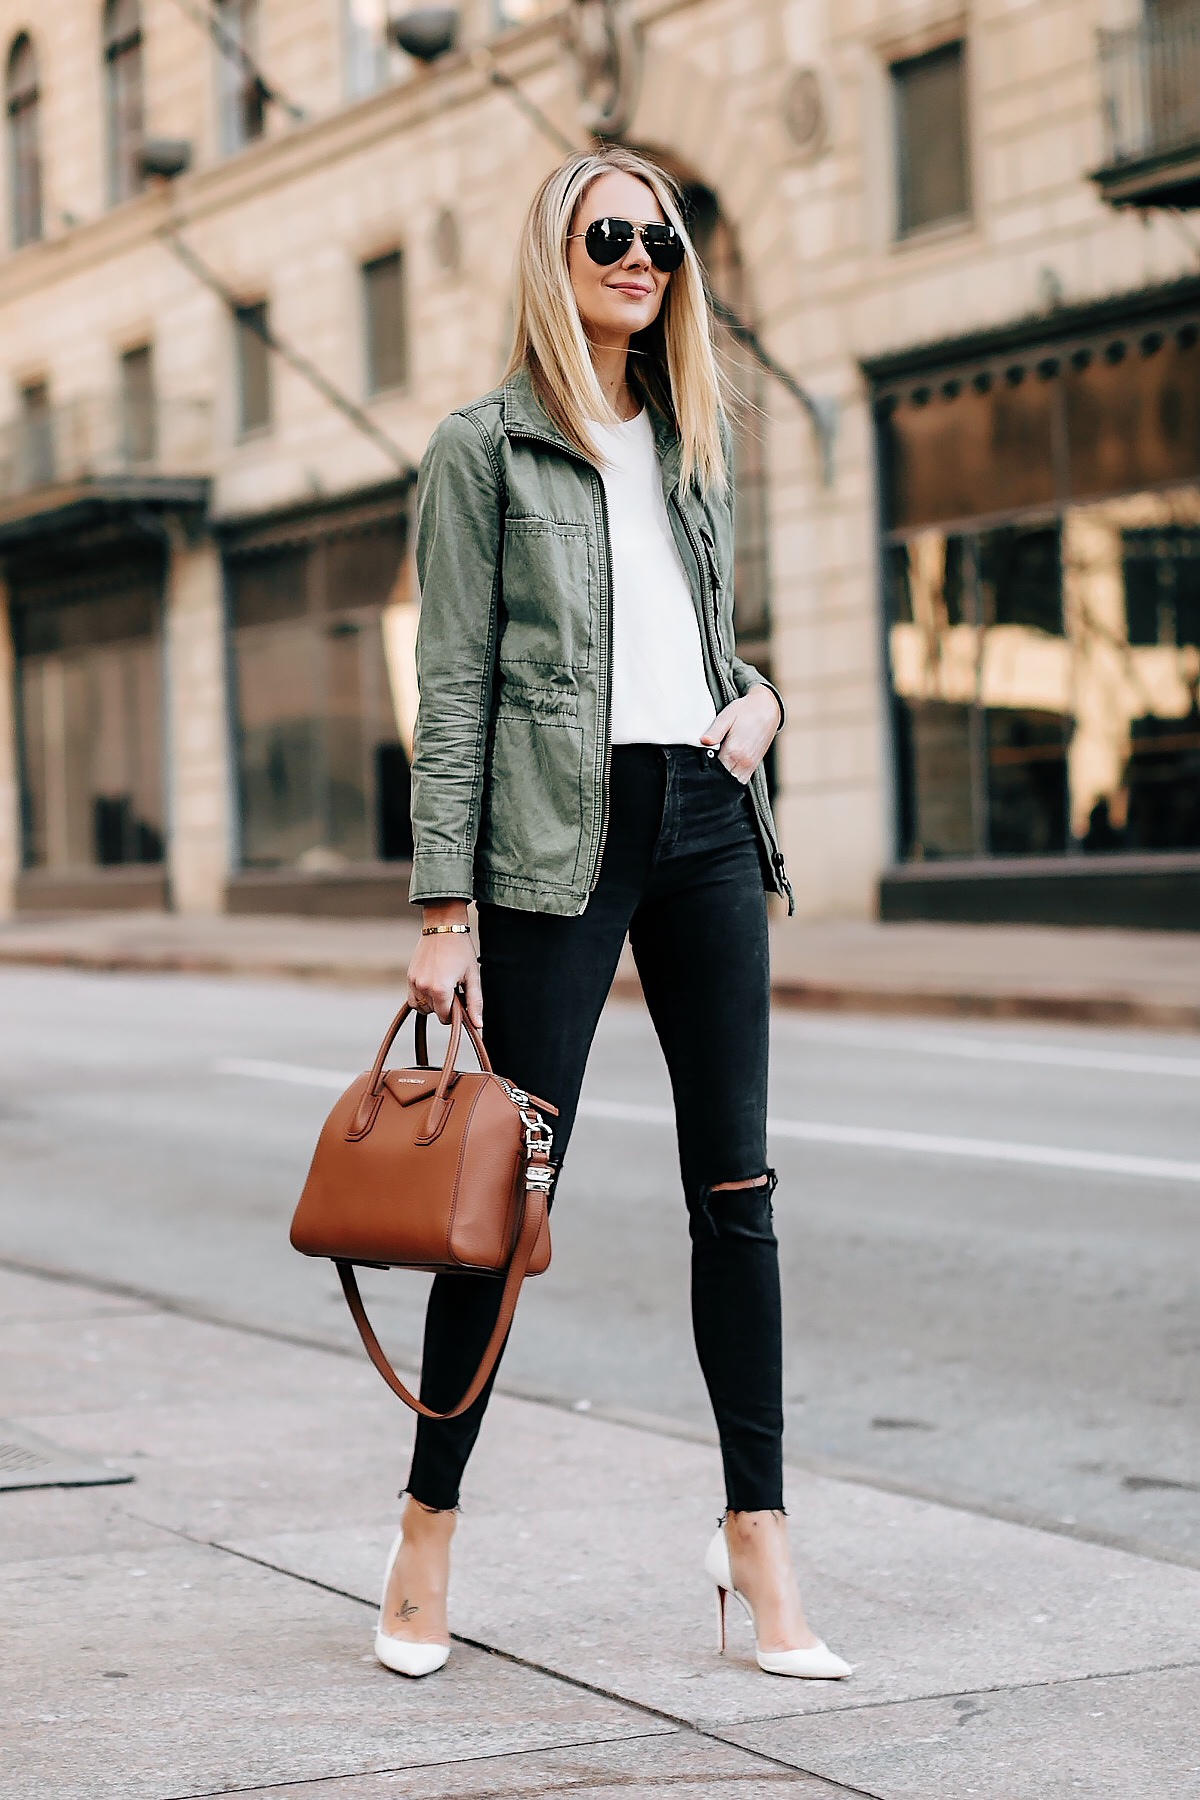 0dc67546769 Blonde Woman Wearing Madewell Utility Green Jacket White Top Black Ripped  Jeans White Pumps Givenchy Antigona